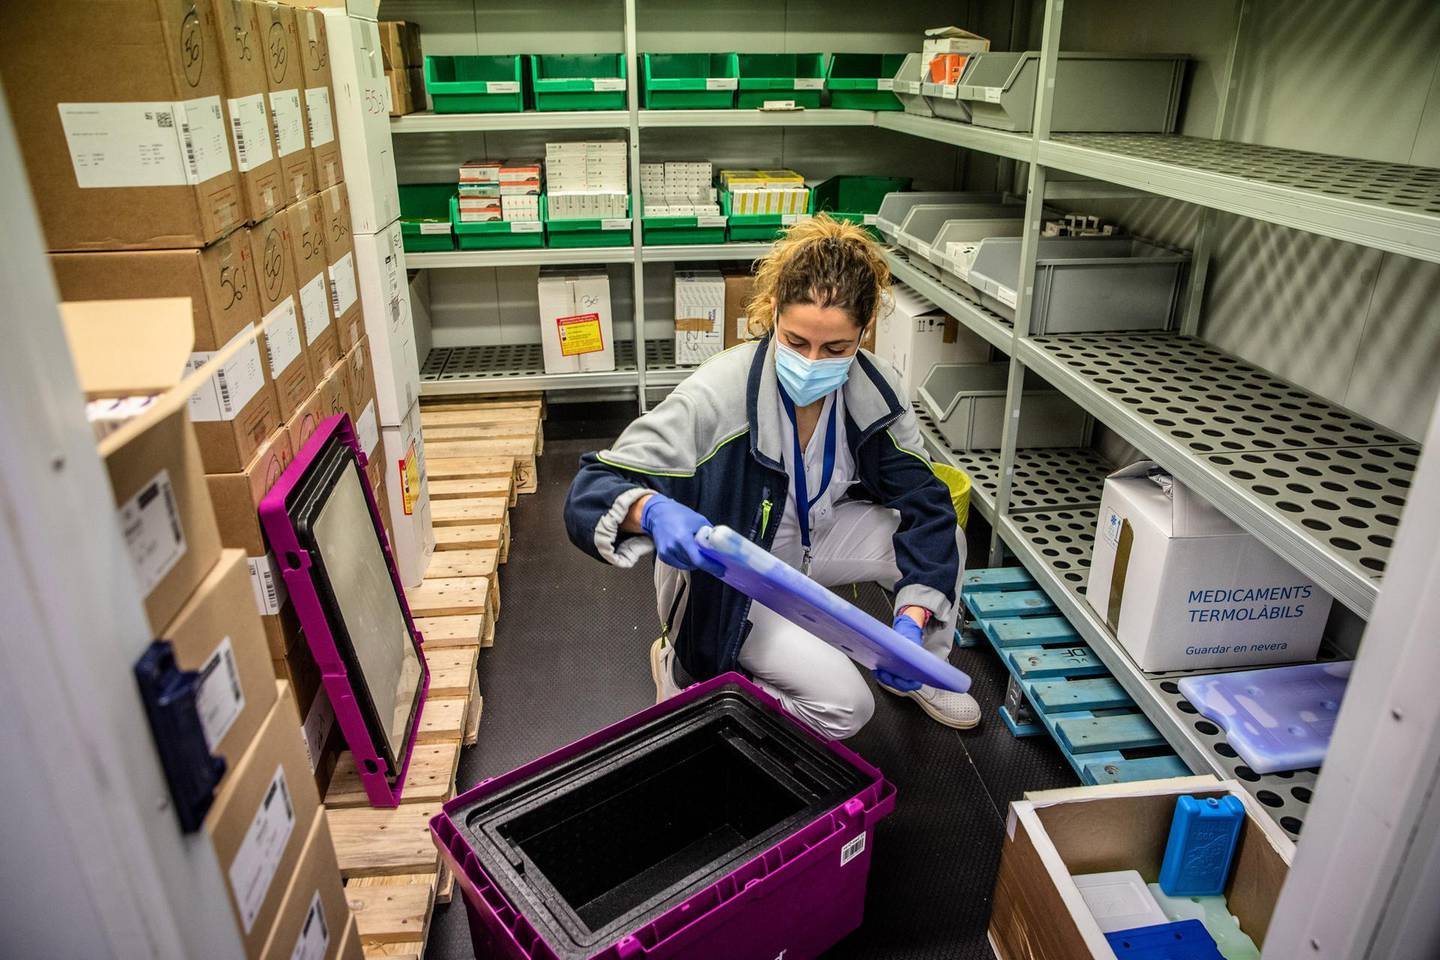 Alba Arocas, coordinator of the central Catalunya vaccination team, packs a cold storage box containing vials of the Pfizer-BioNTech Covid-19 vaccine ready for distribution at a facility in Catalunya, Spain, on Tuesday, Dec. 29, 2020. On Monday, Spain became the fourth European country torecord more than 50,000 coronavirus deaths. Photographer: Angel Garcia/Bloomberg